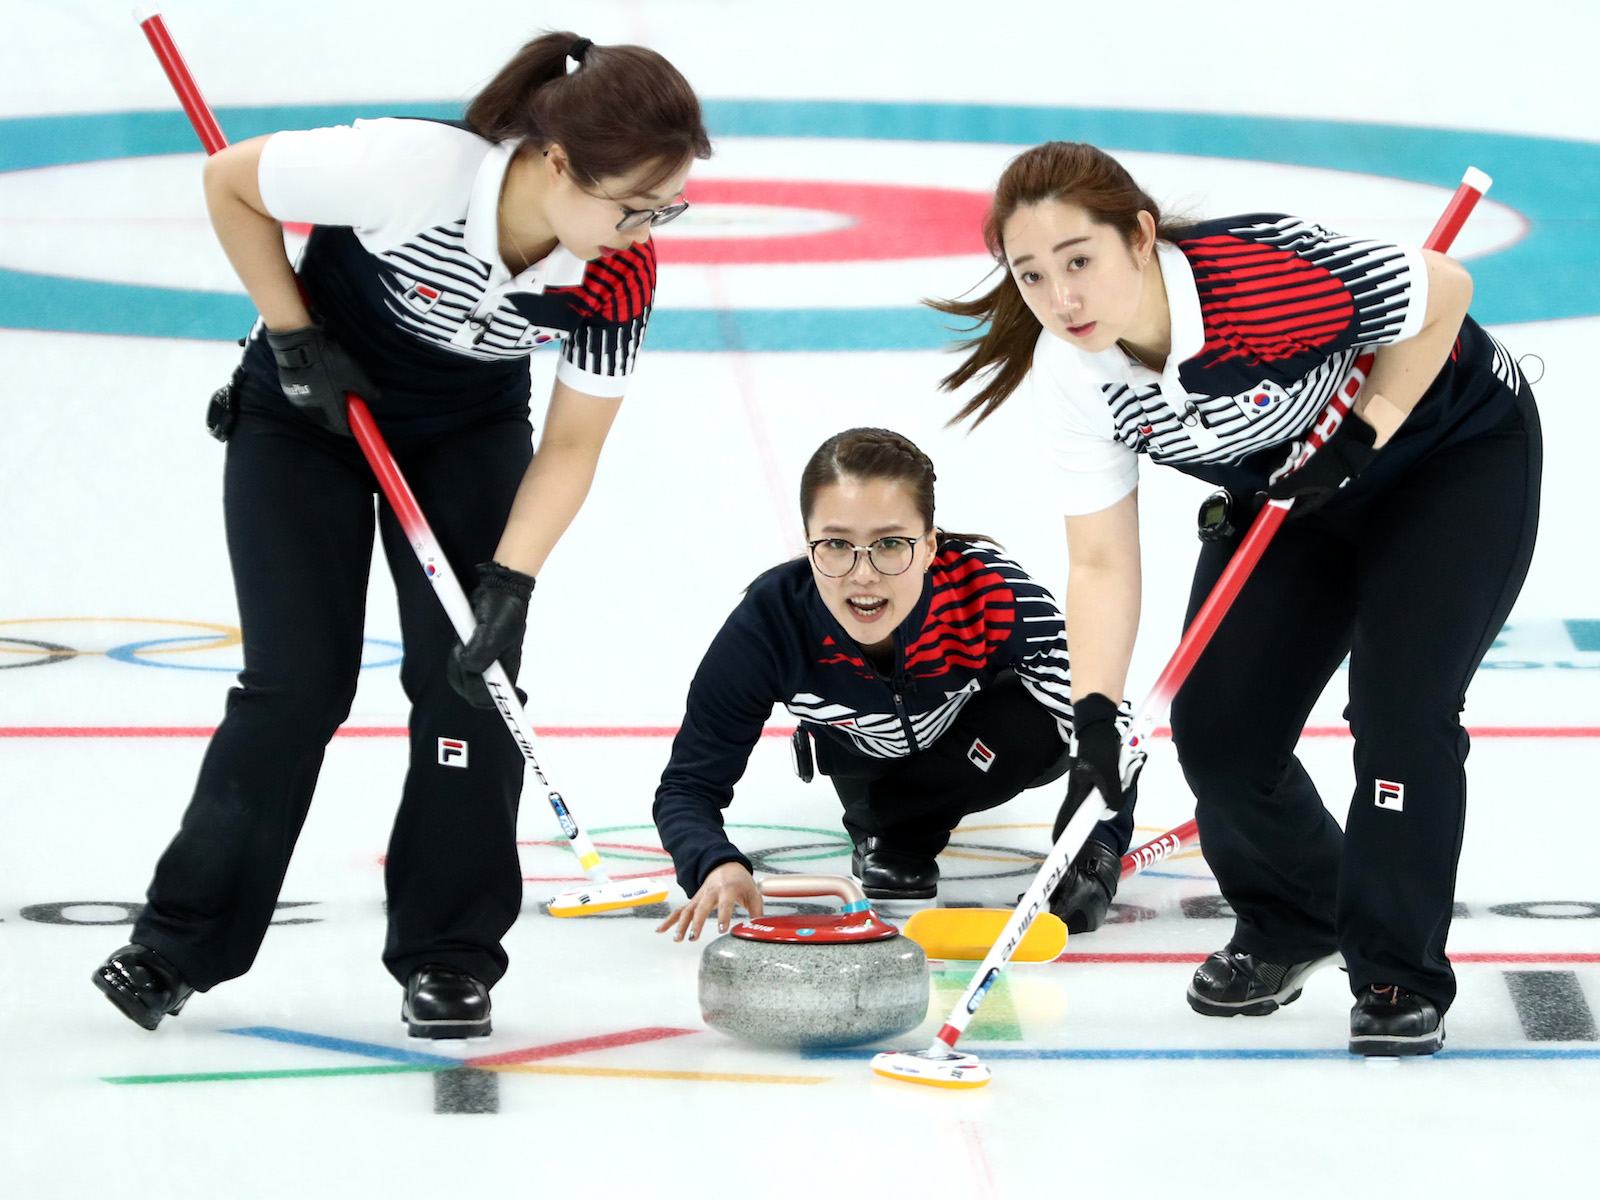 People are Crushing Hard on the South Korean 'Garlic Girls' Curling Team